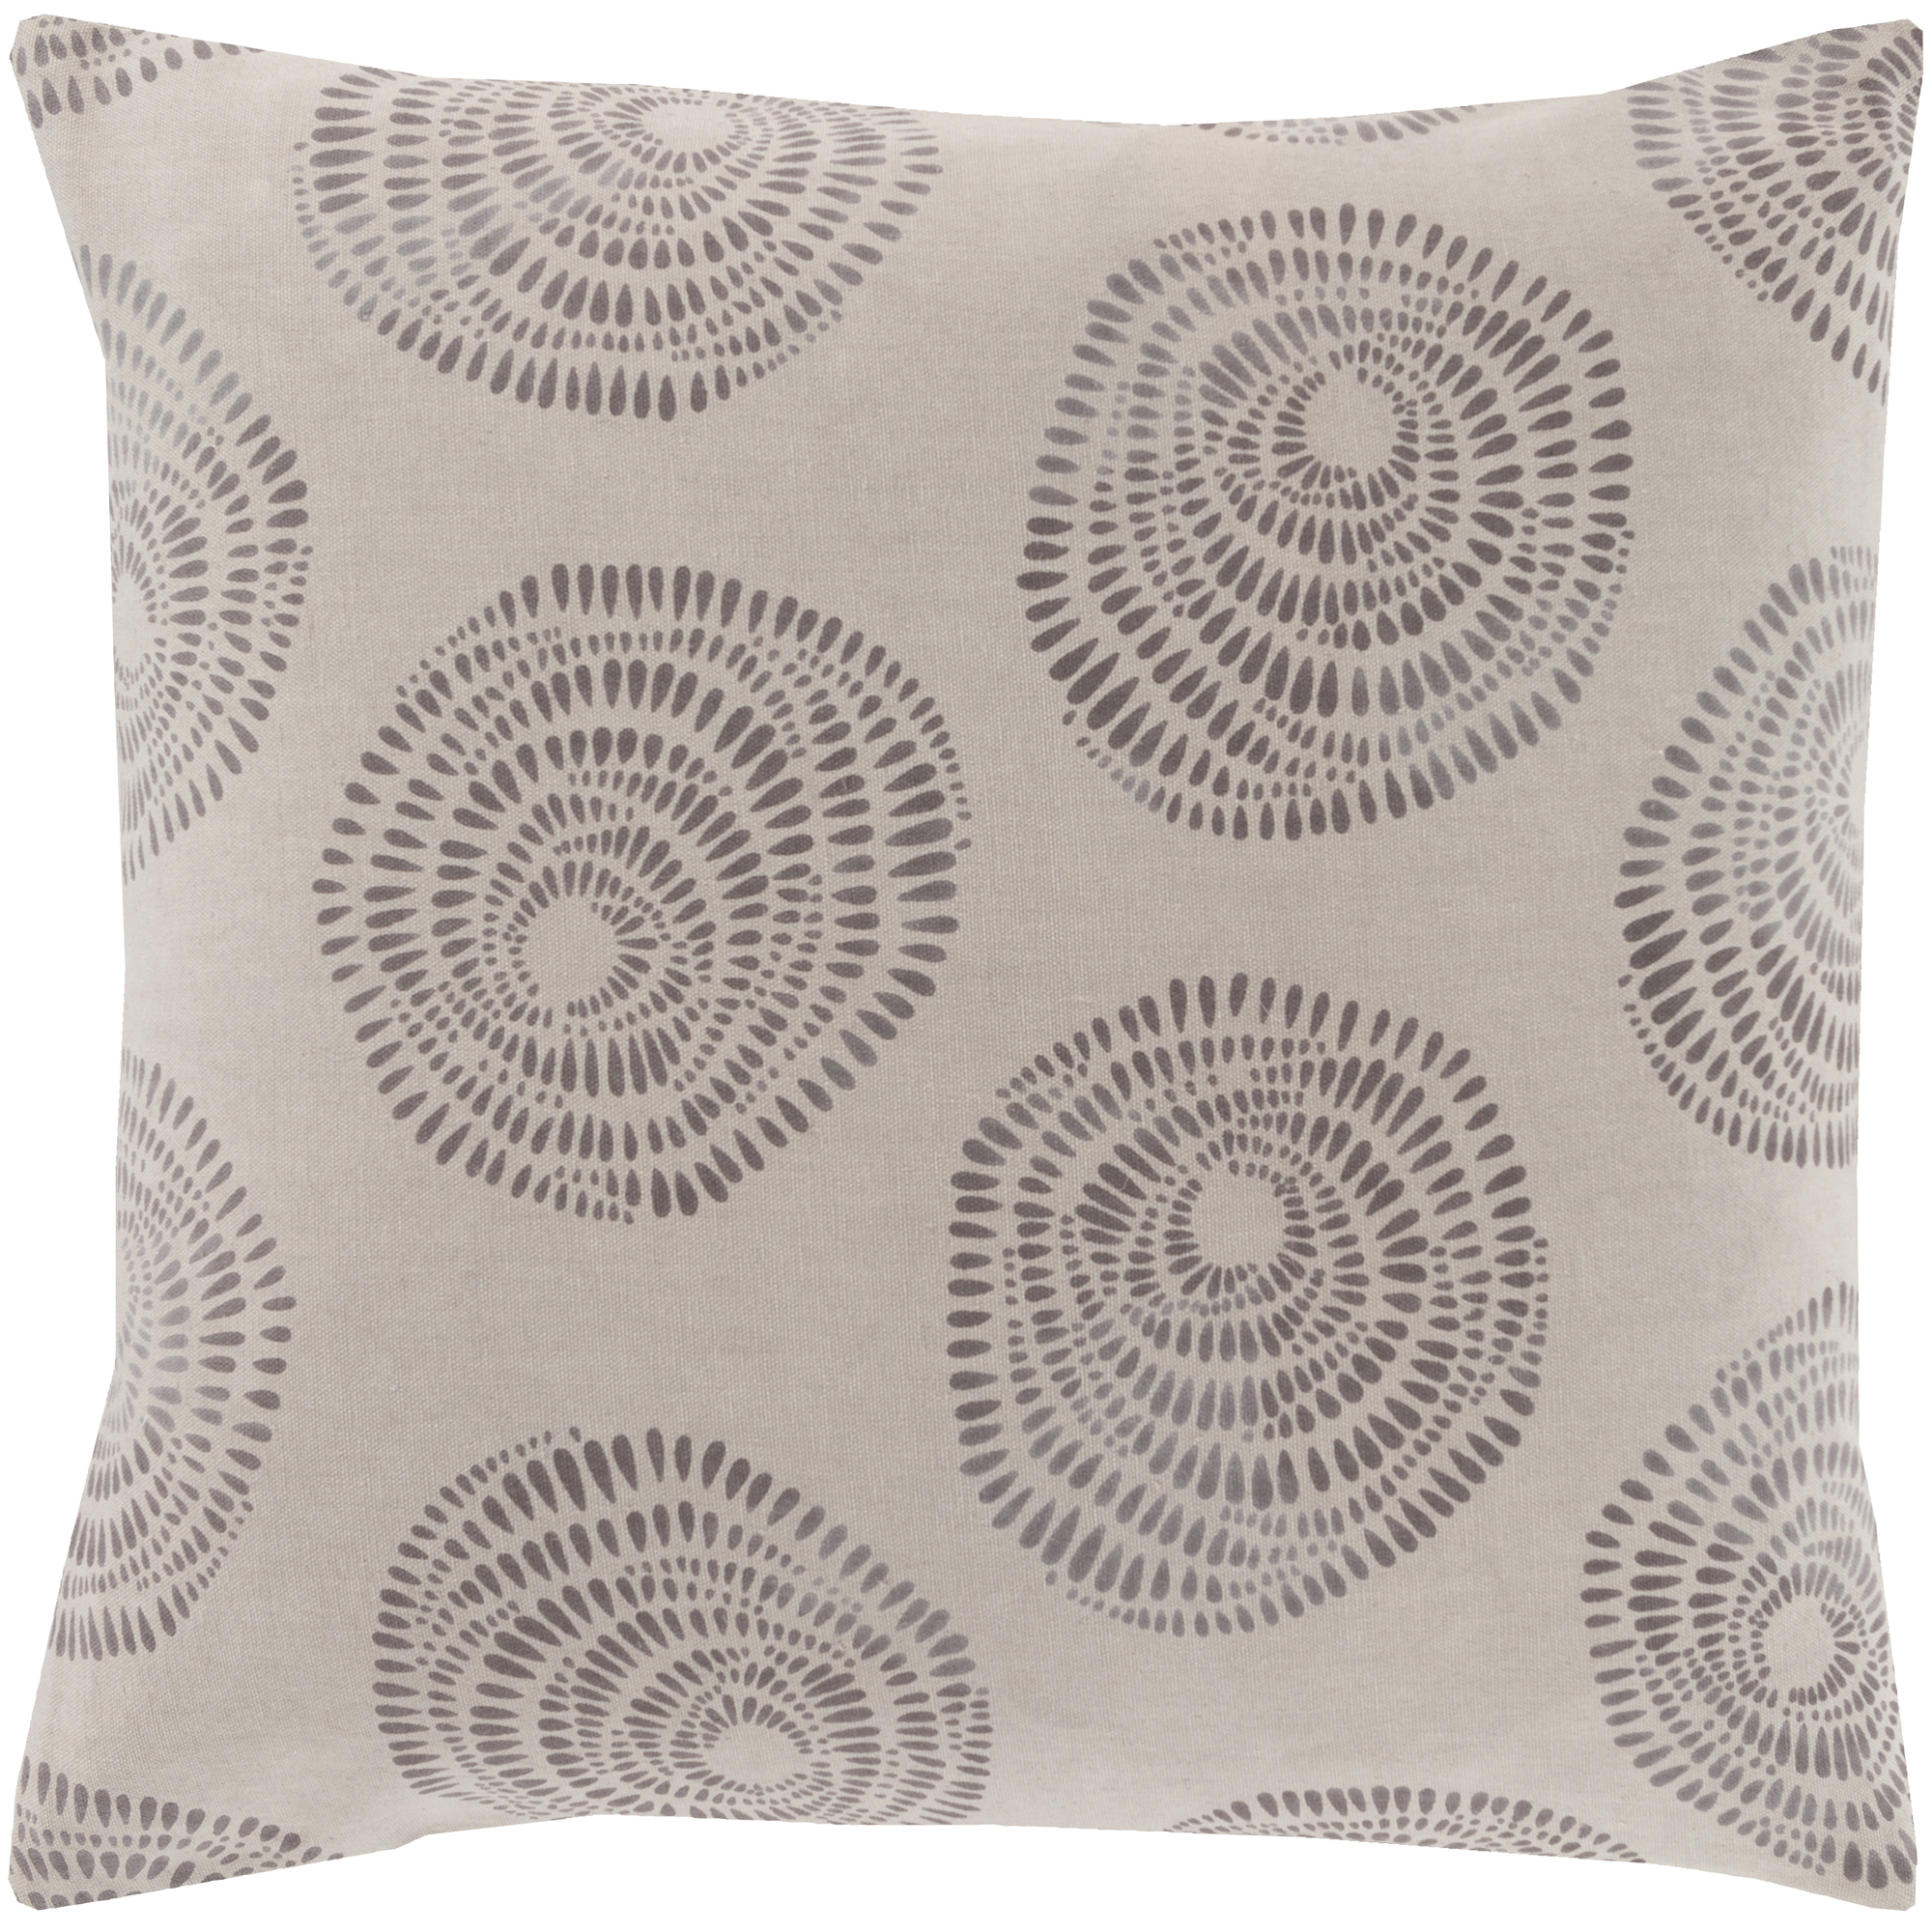 "Art of Knot Danica 18"" x 18"" Pillow (with Down Fill)"